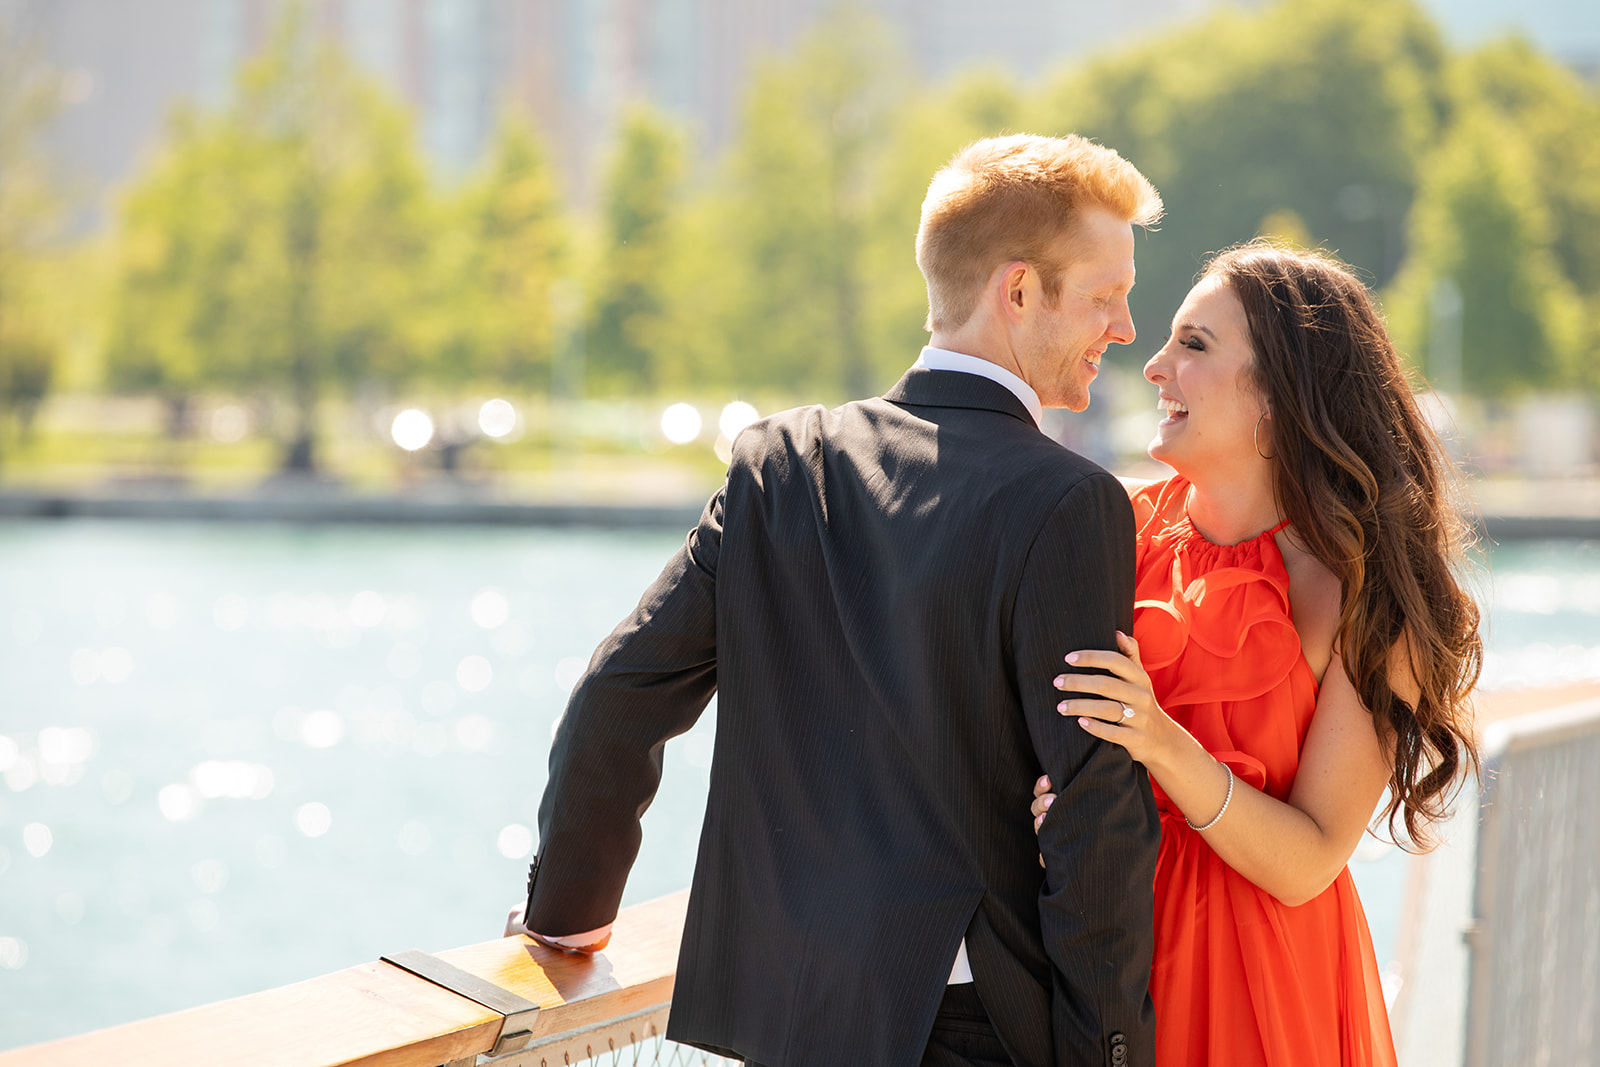 Chicago engagement photo shoot e-session collin pierson photography navy pier laughing photo